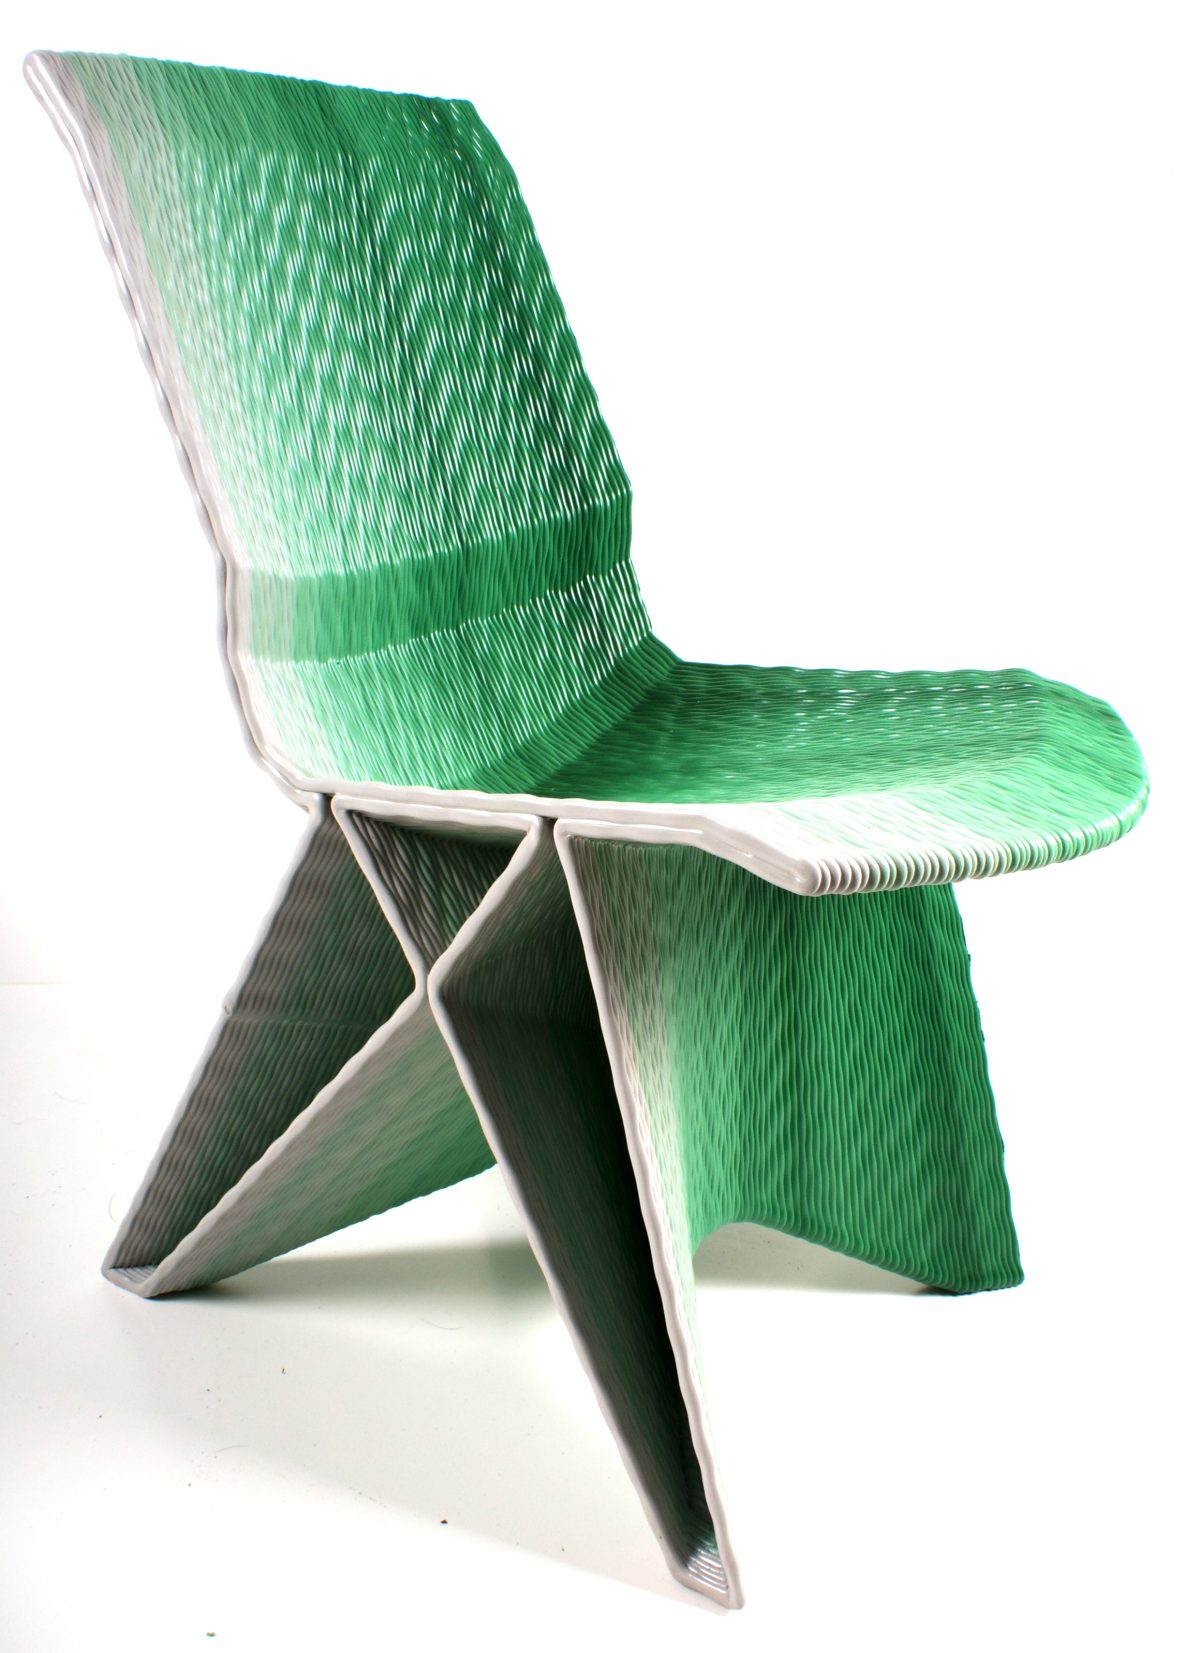 Endless pulse low chair – gradient groen – Dirk van der Kooij